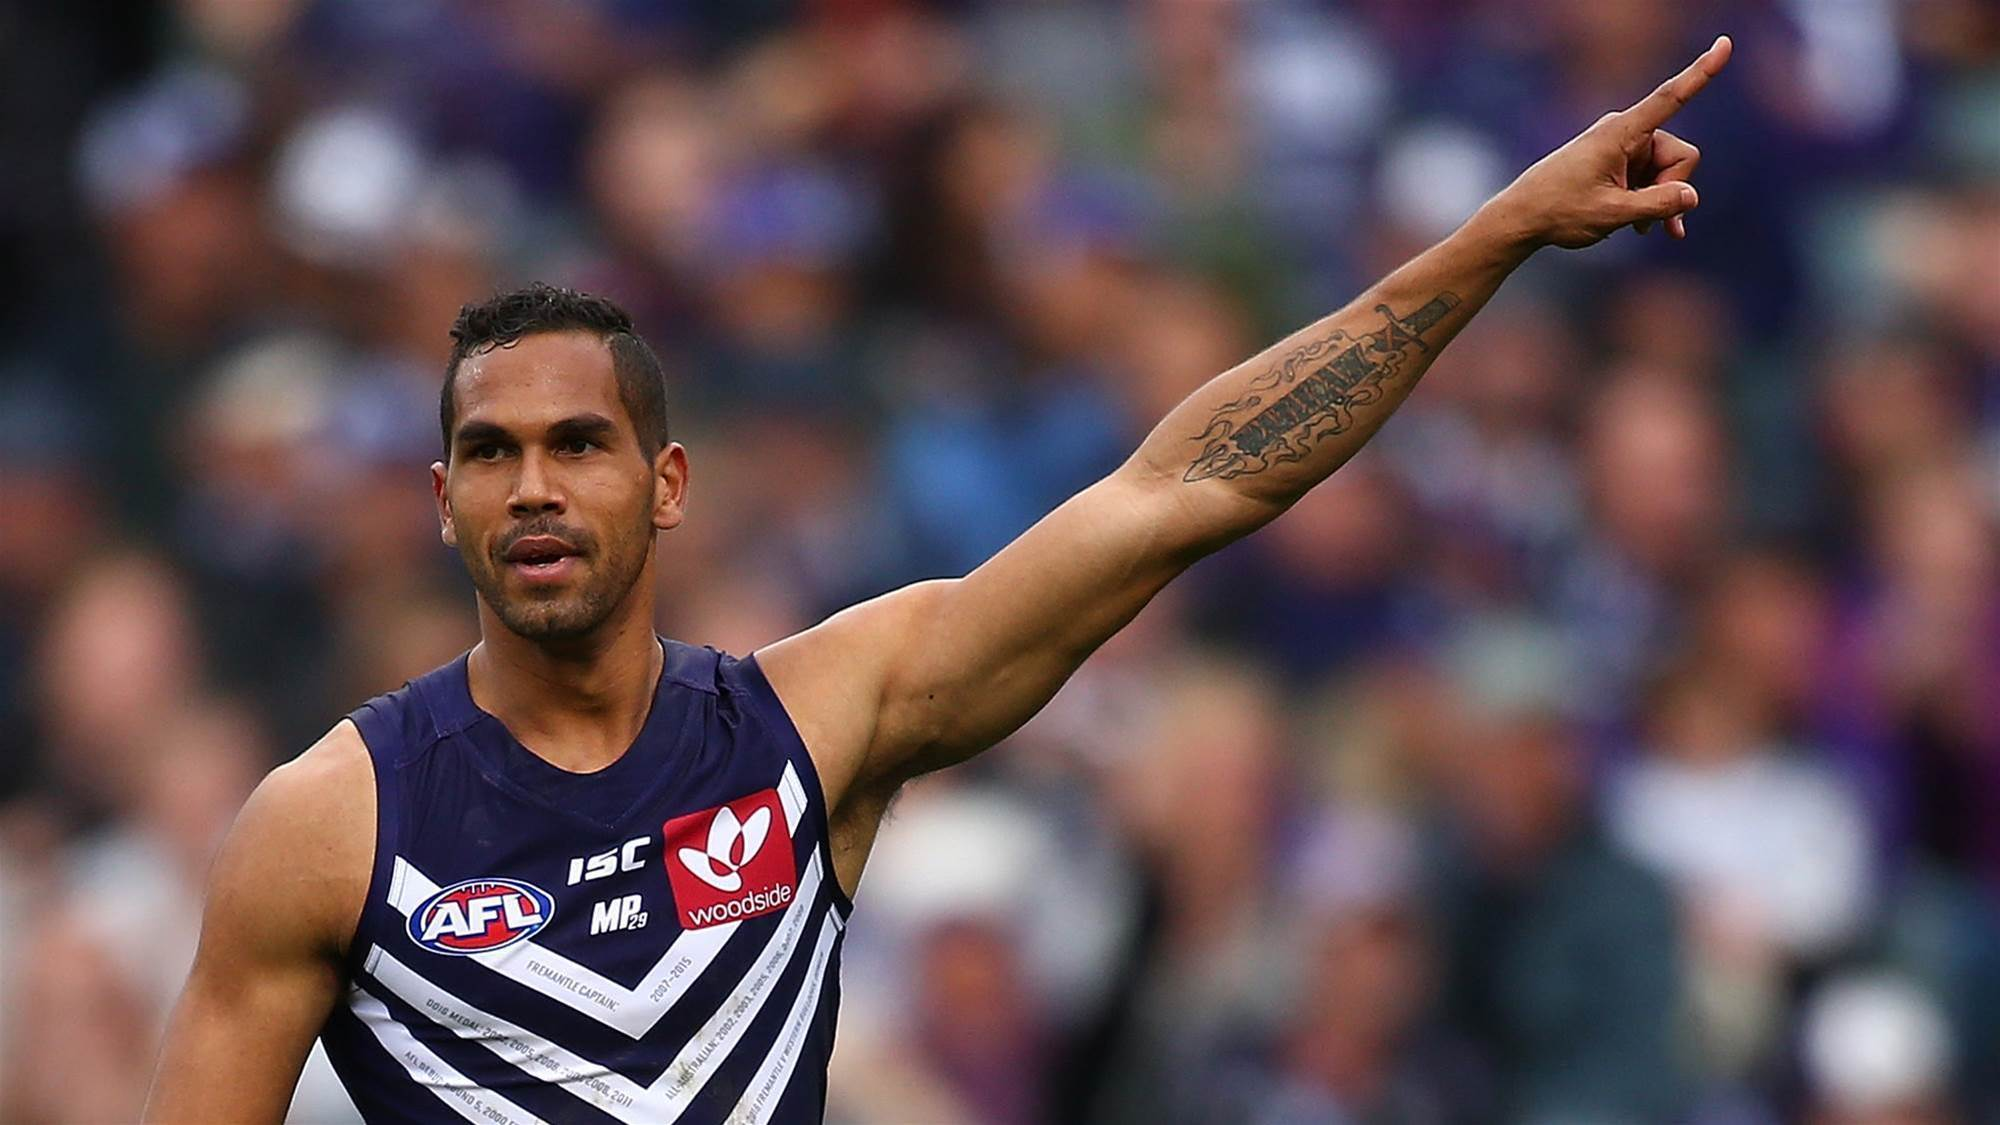 AFL star pleads not guilty to stabbing